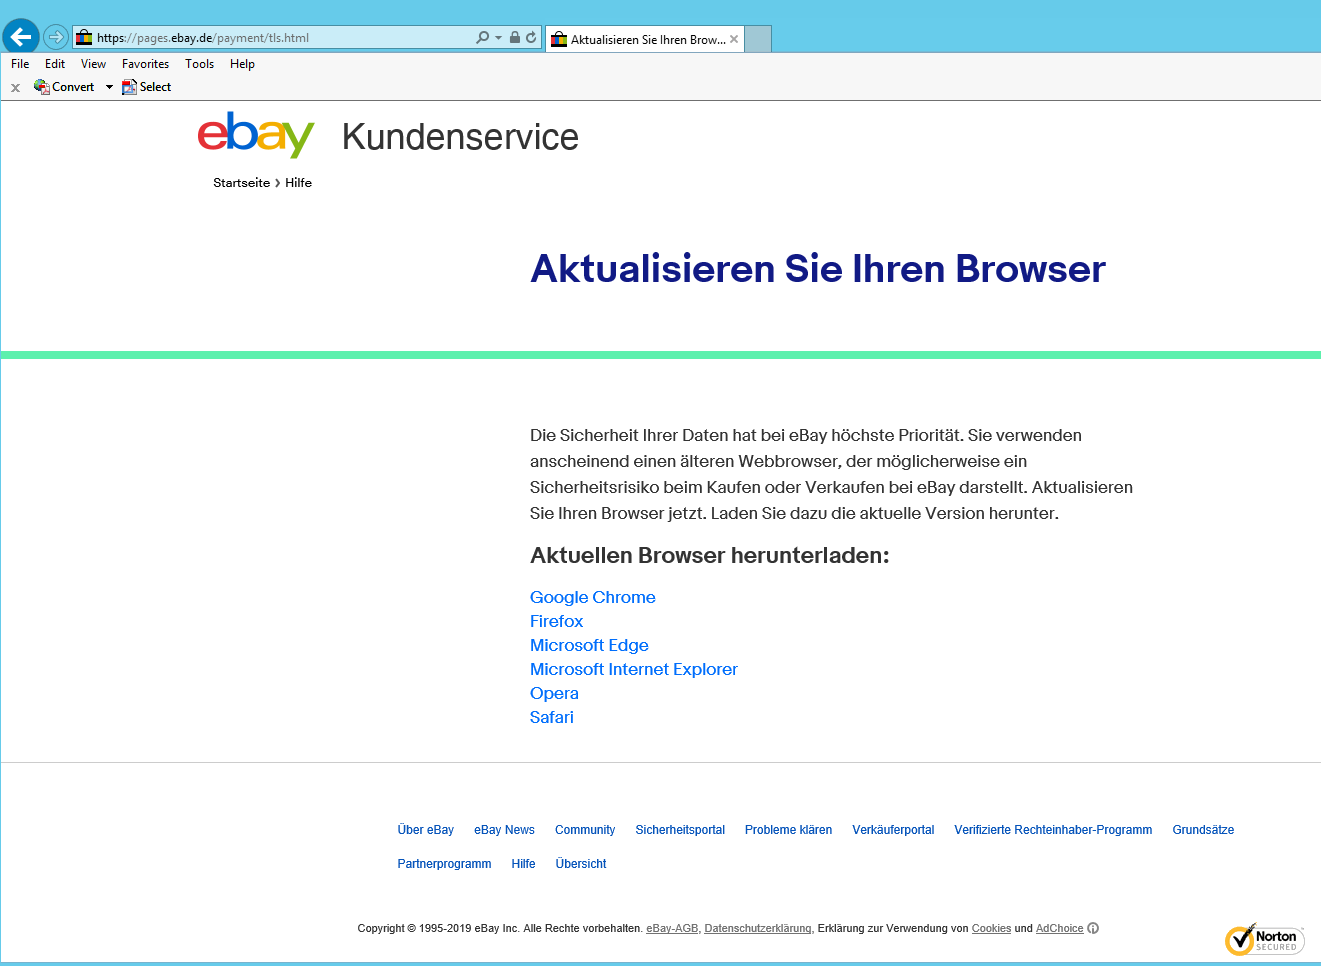 ebay internet explorer cultbooking